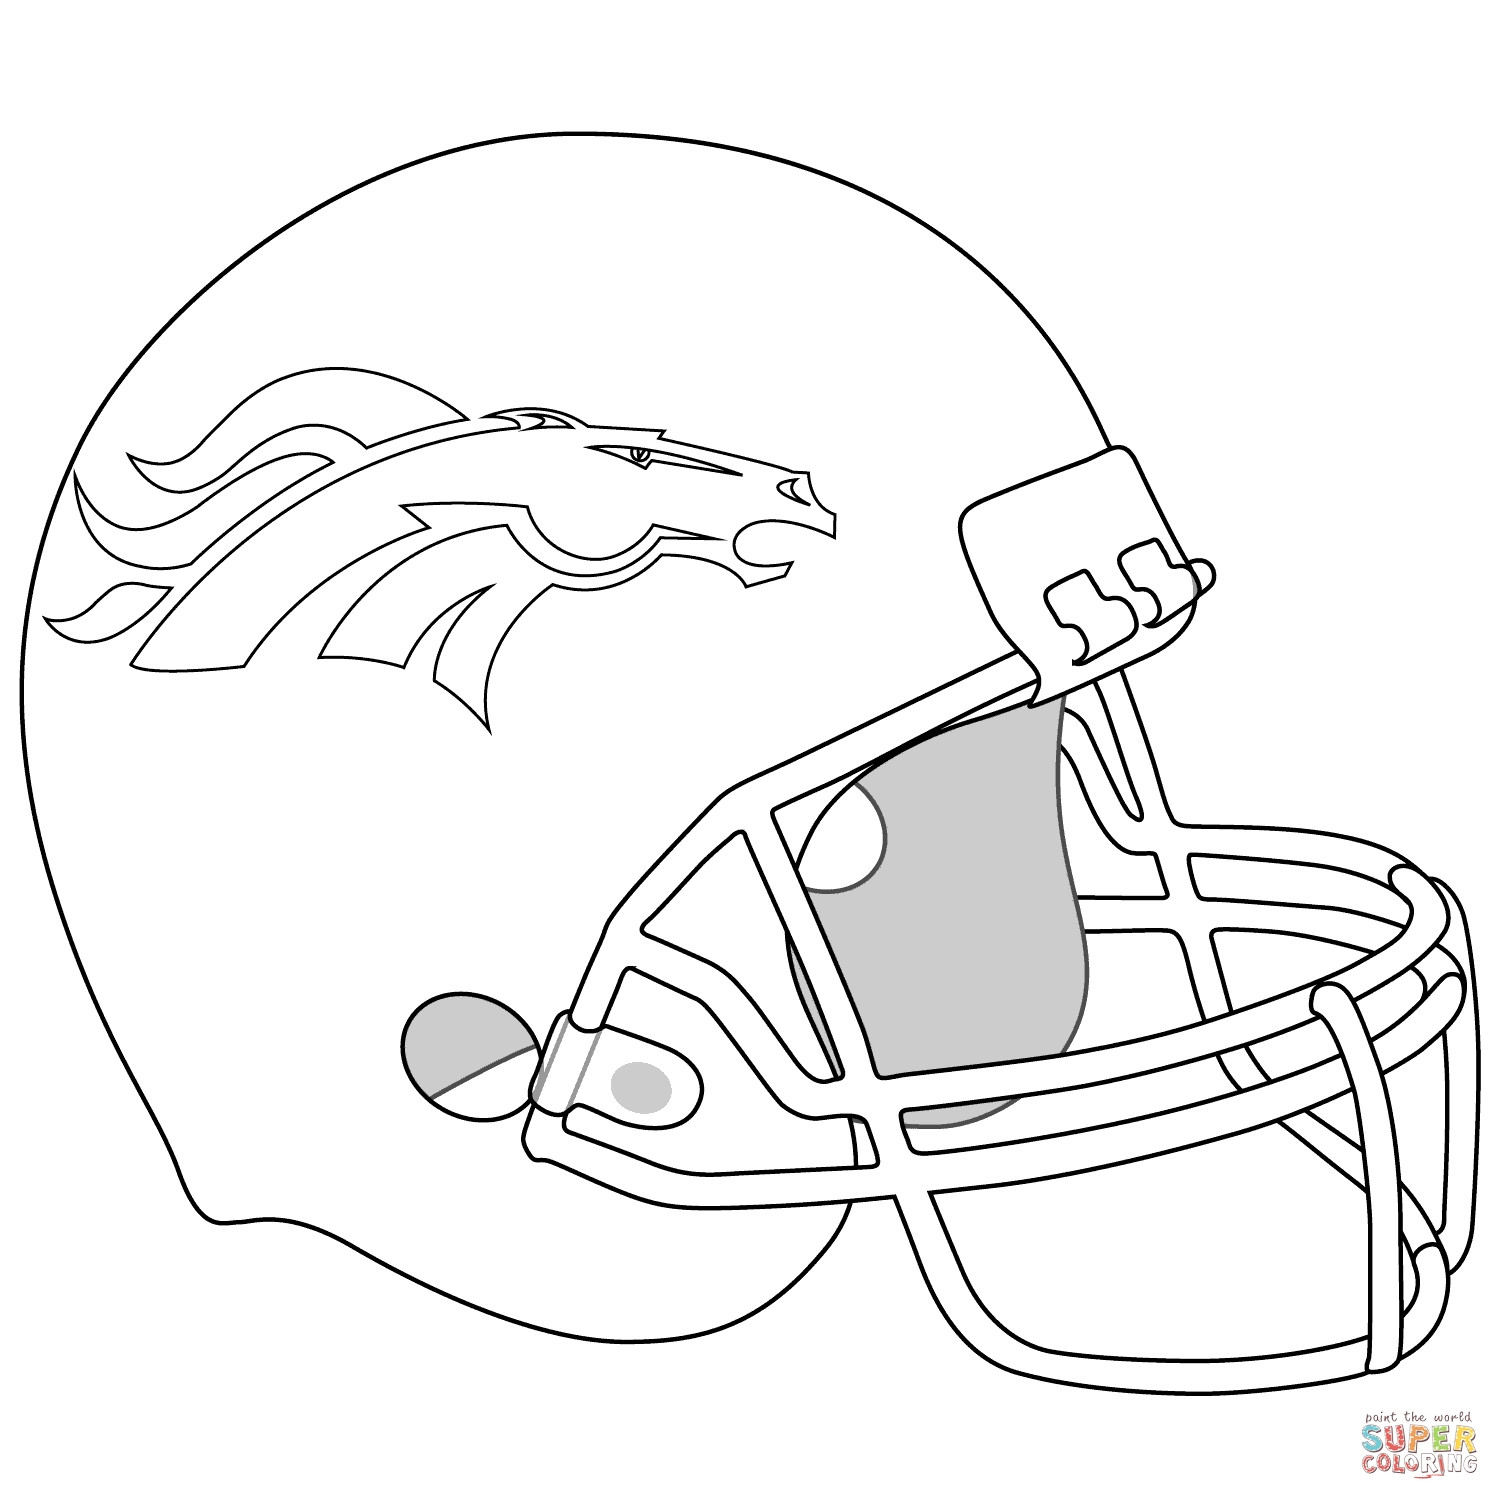 Best ideas about Coloring Pages For Boys Football Broncos . Save or Pin New Baby Jesus Coloring Pages Printable Free Now.